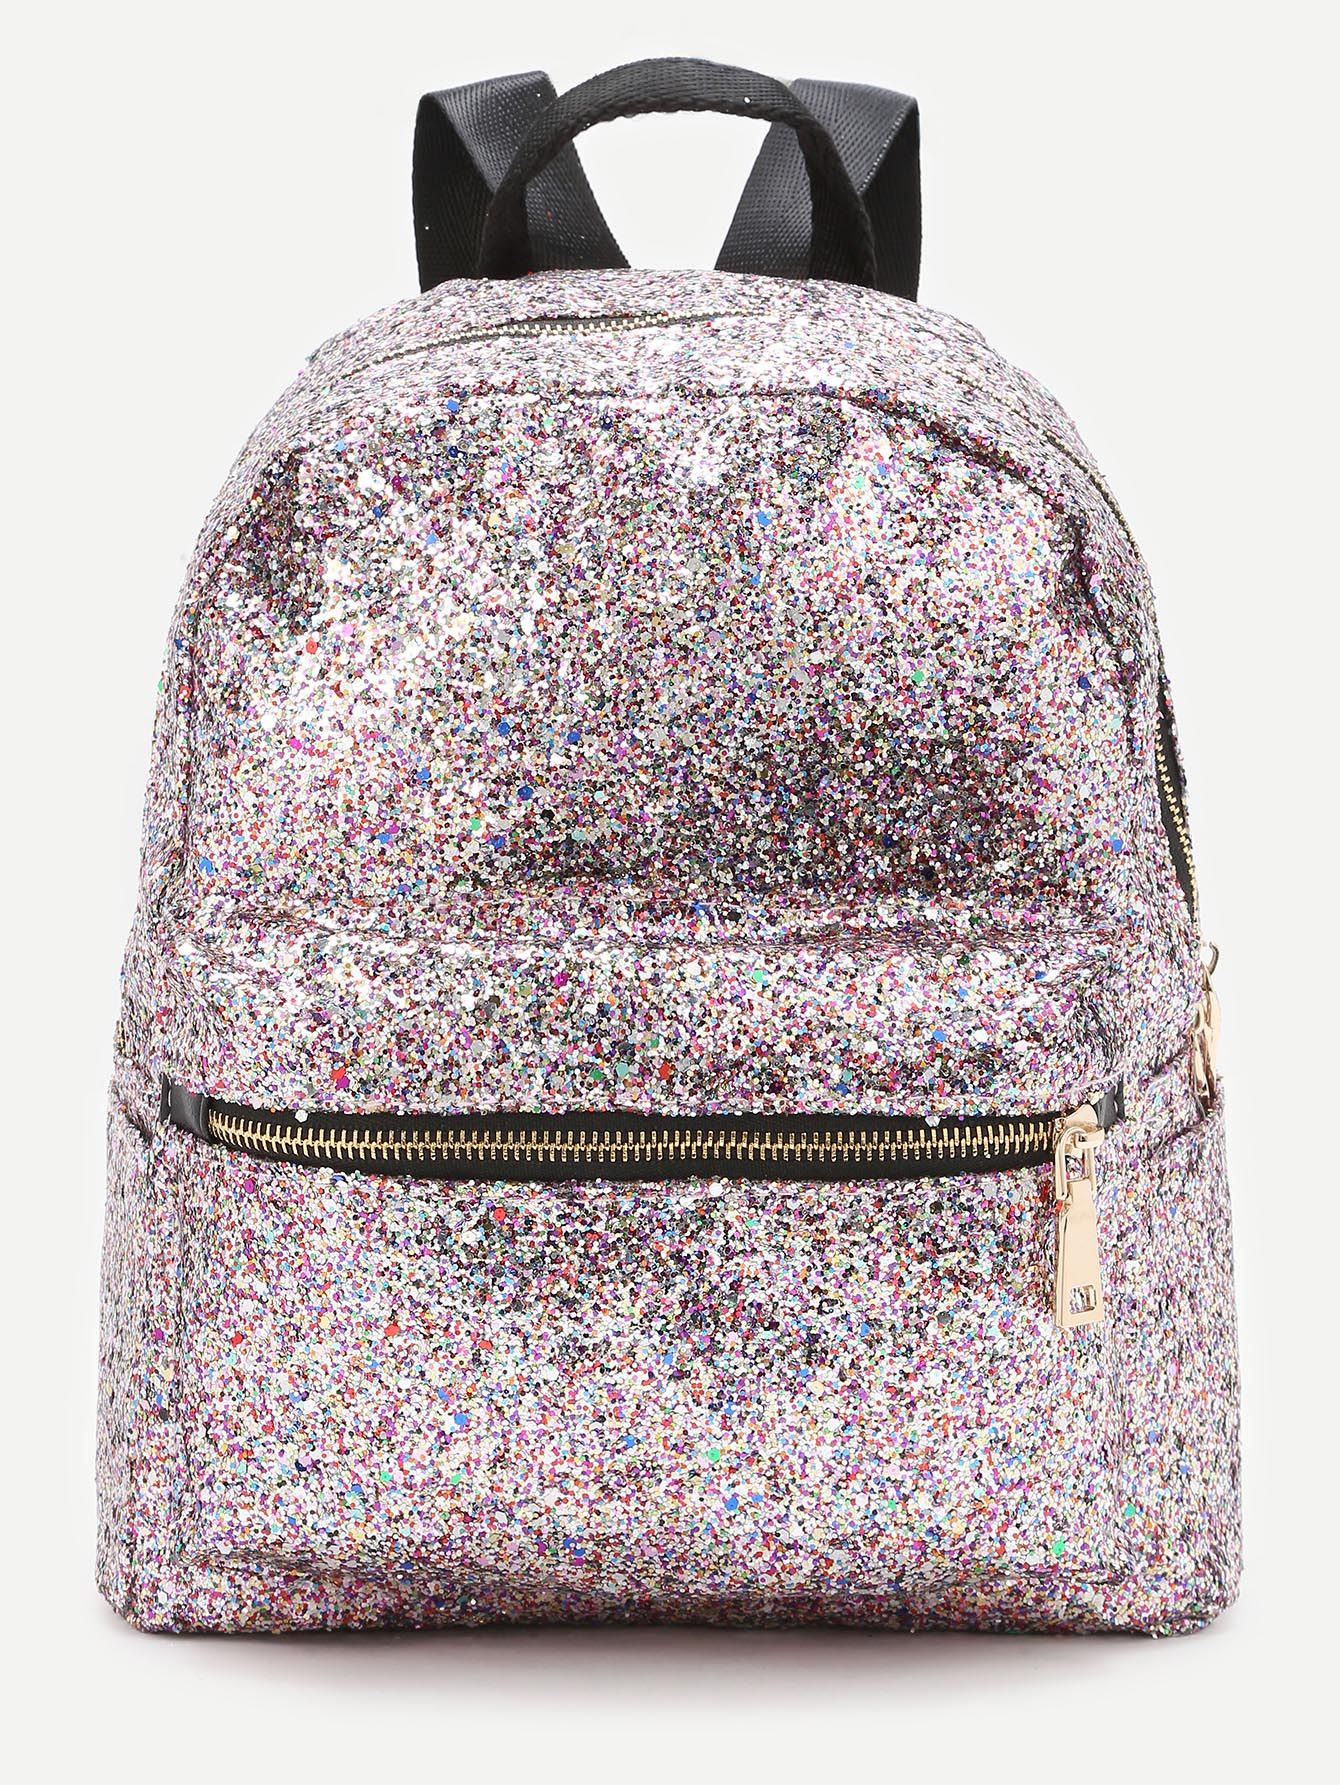 11195d127a3e7 Shop Pink Front Zipper Glitter Backpack online. SheIn offers Pink Front  Zipper Glitter Backpack   more to fit your fashionable needs.